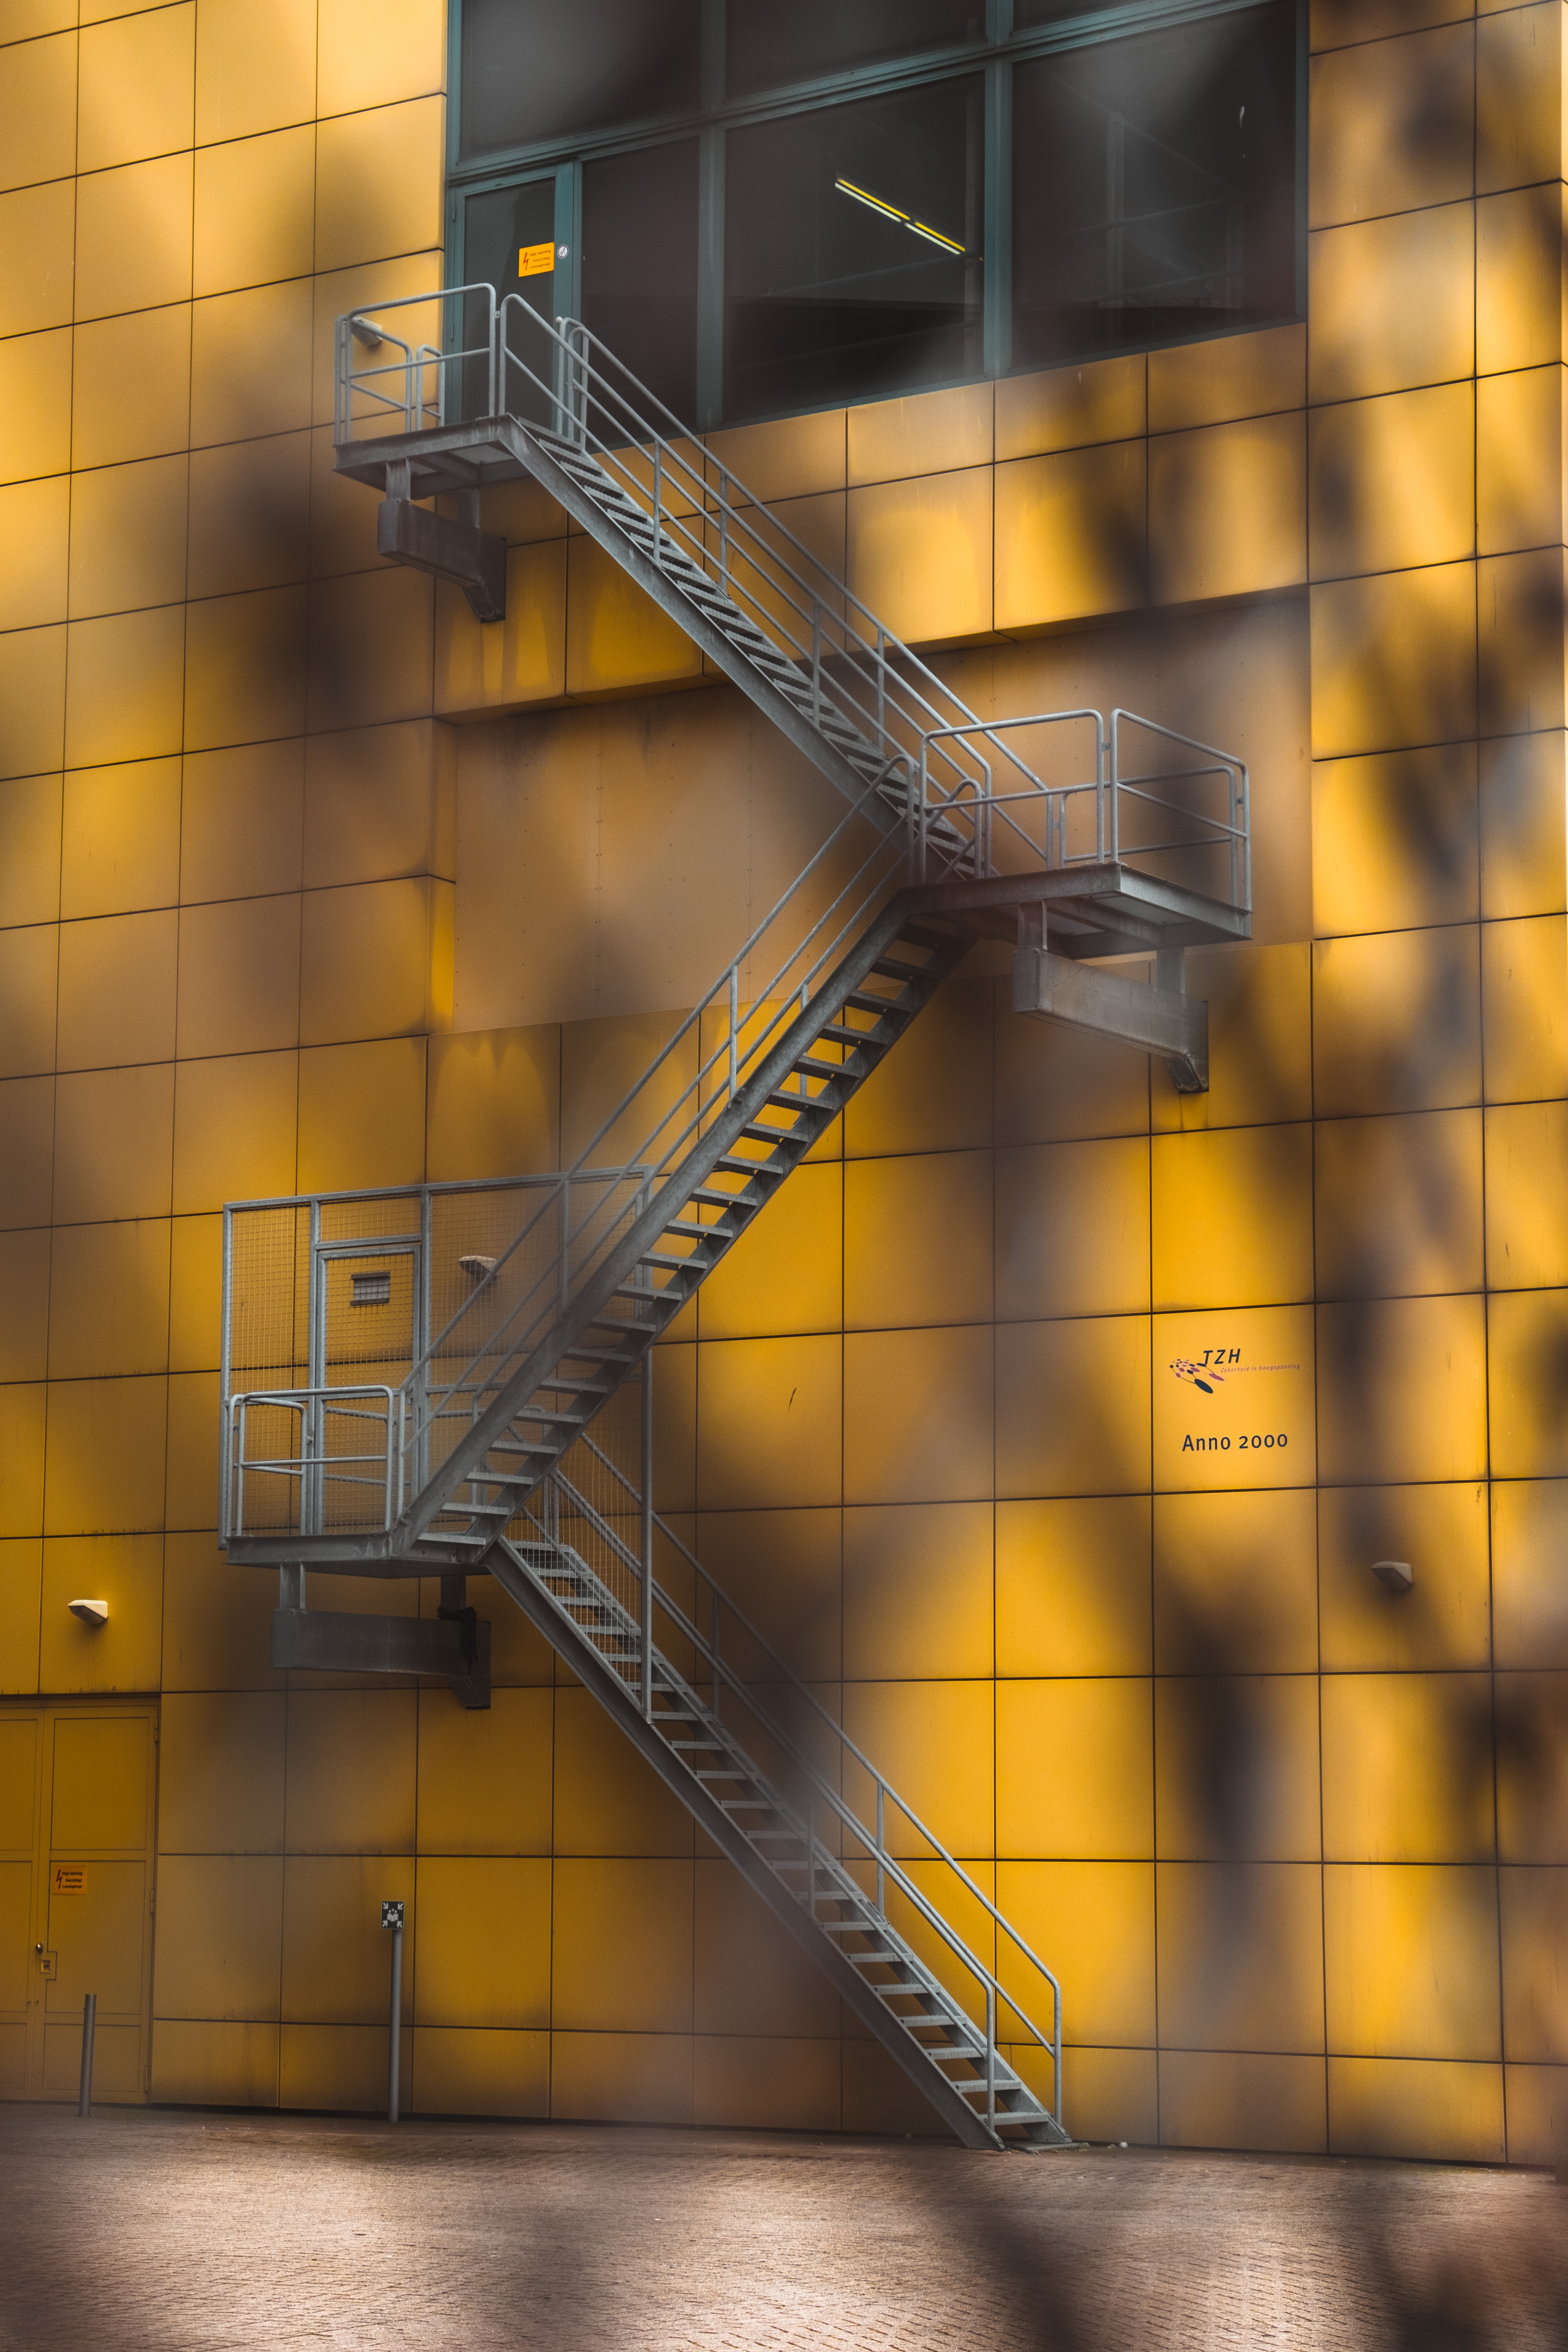 gray steel ladder beside yellow building